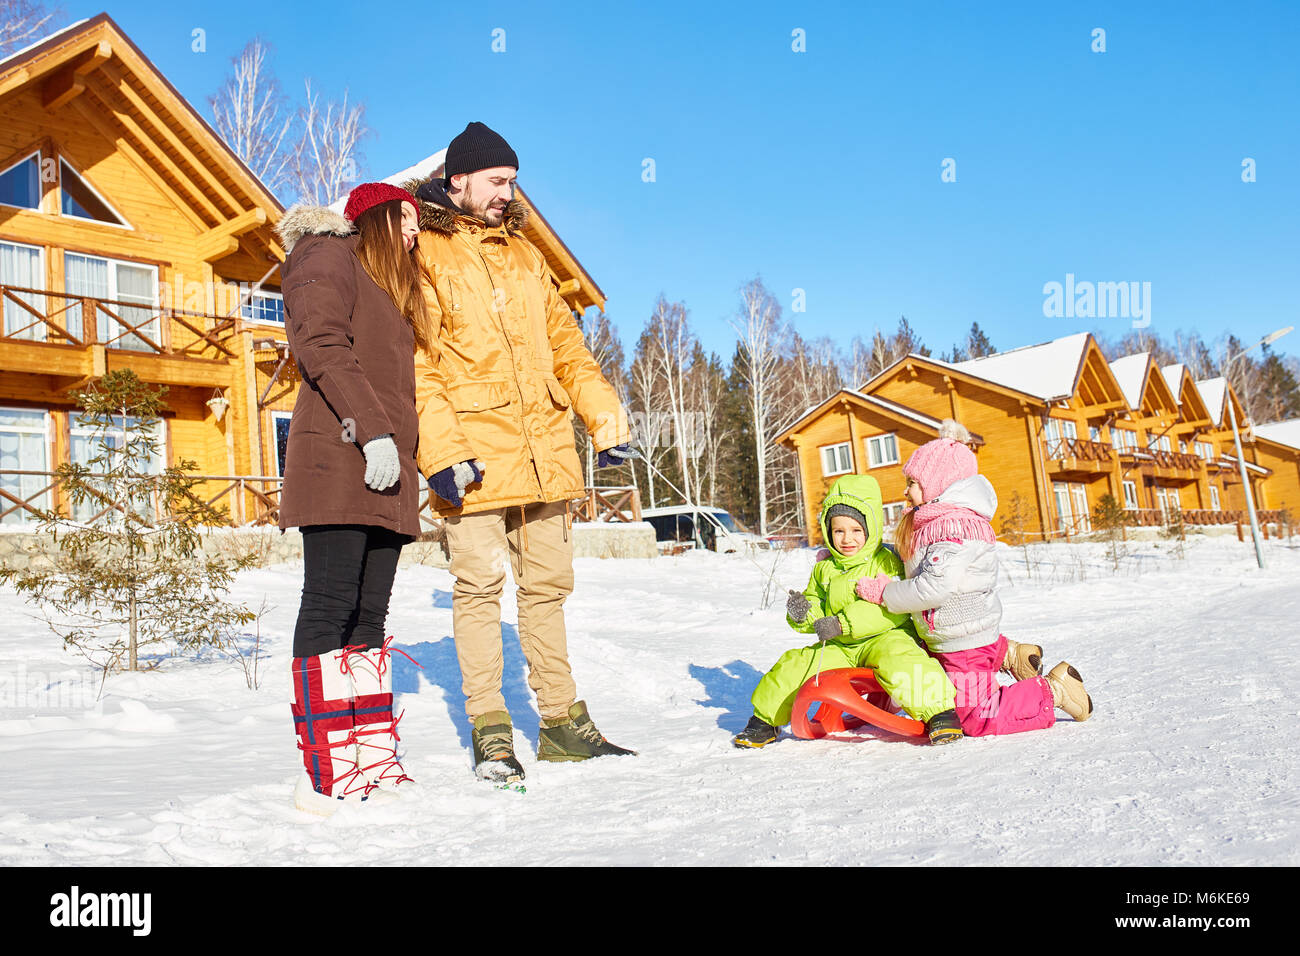 Active family weekend - Stock Image